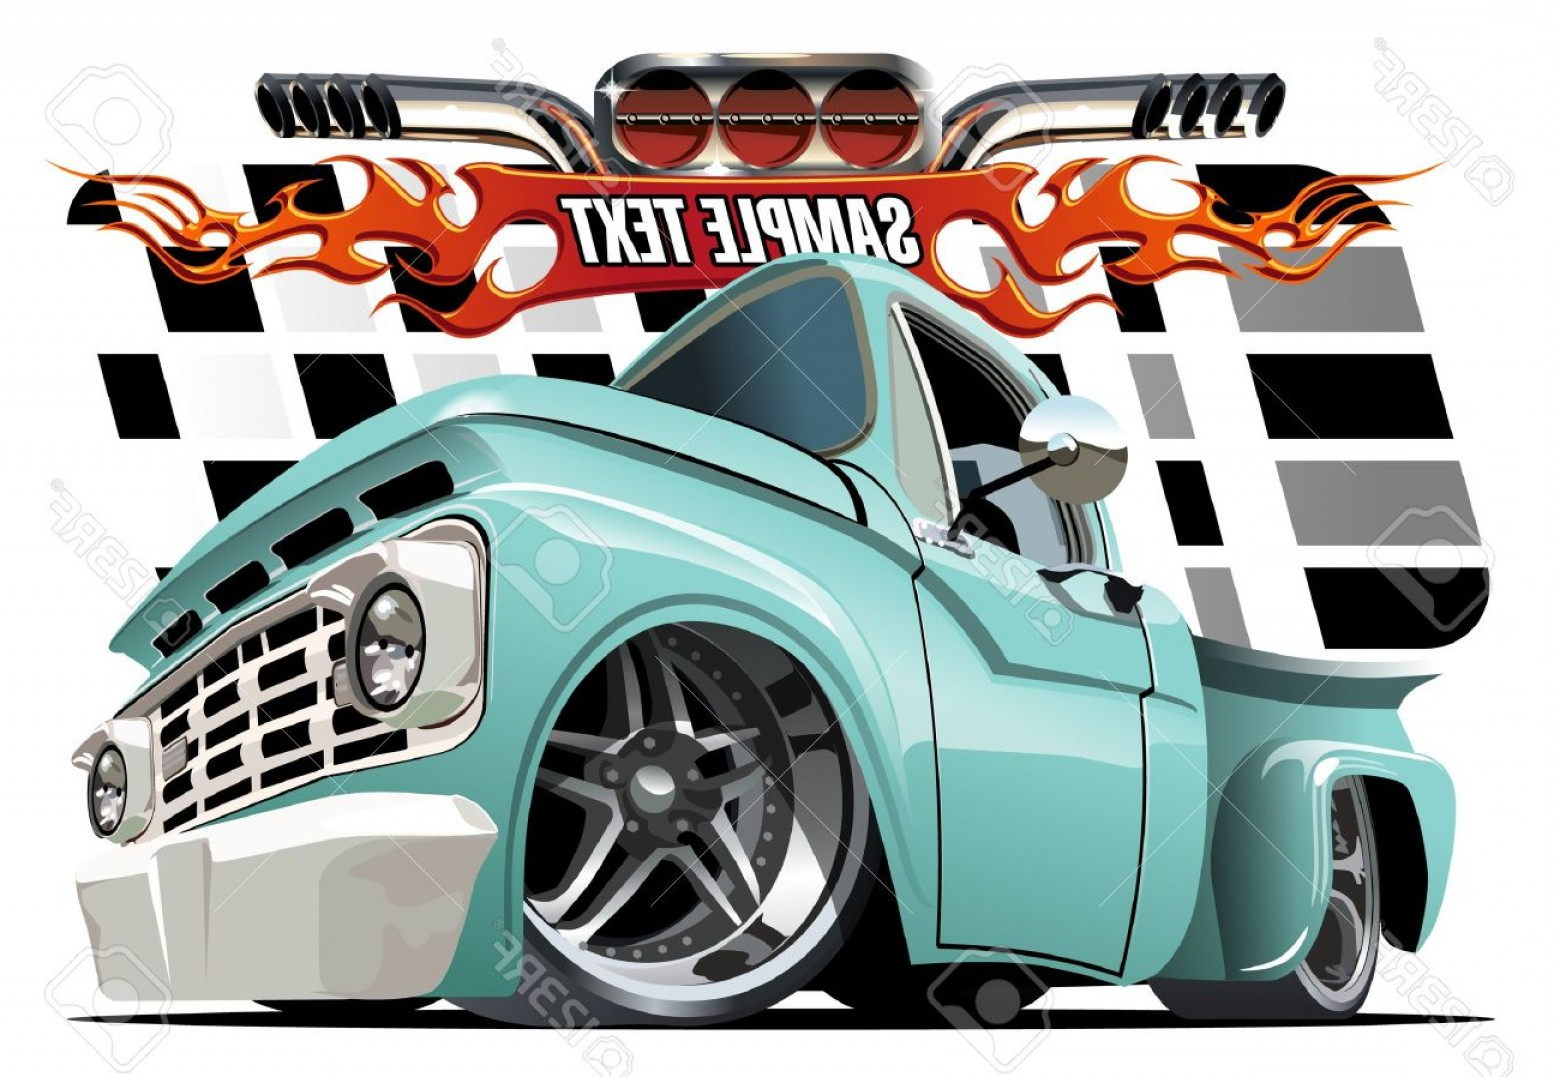 Lowrider Vector: Photostock Vector Vector Cartoon Lowrider Available Eps Separated By Groups And Layers With Transparency Effects Fo